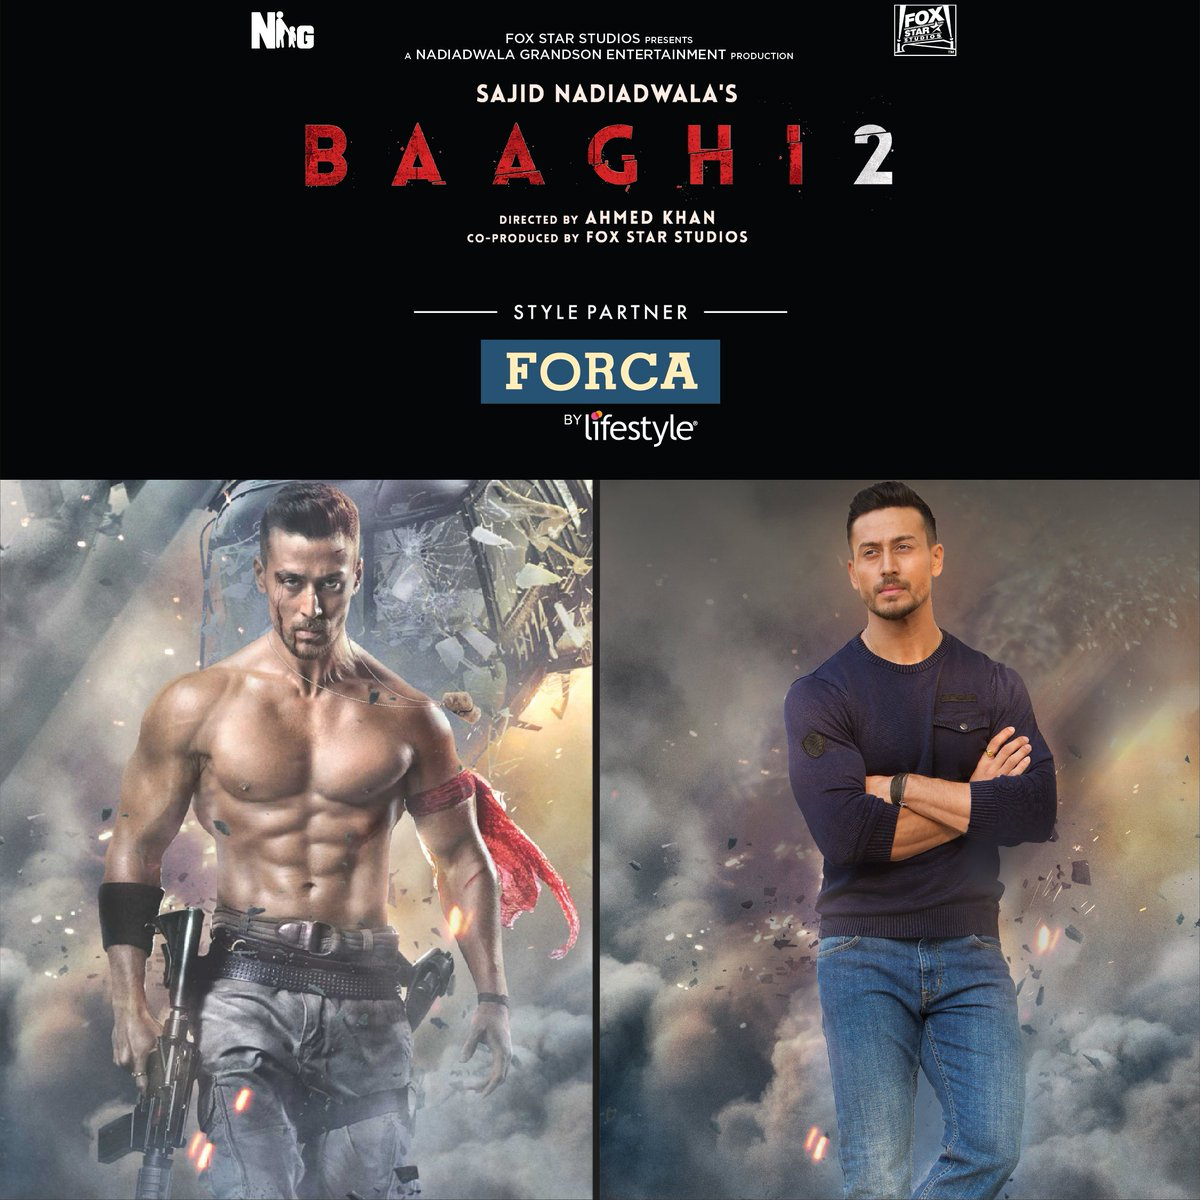 Staggering Gear Up Baaghi Hits Atres Be A Baaghi Or Online At Shop Hashtag On Twitter Watch Baaghi Online 1080p Watch Online Baaghi 2 Full Movie houzz-03 Watch Baaghi Online